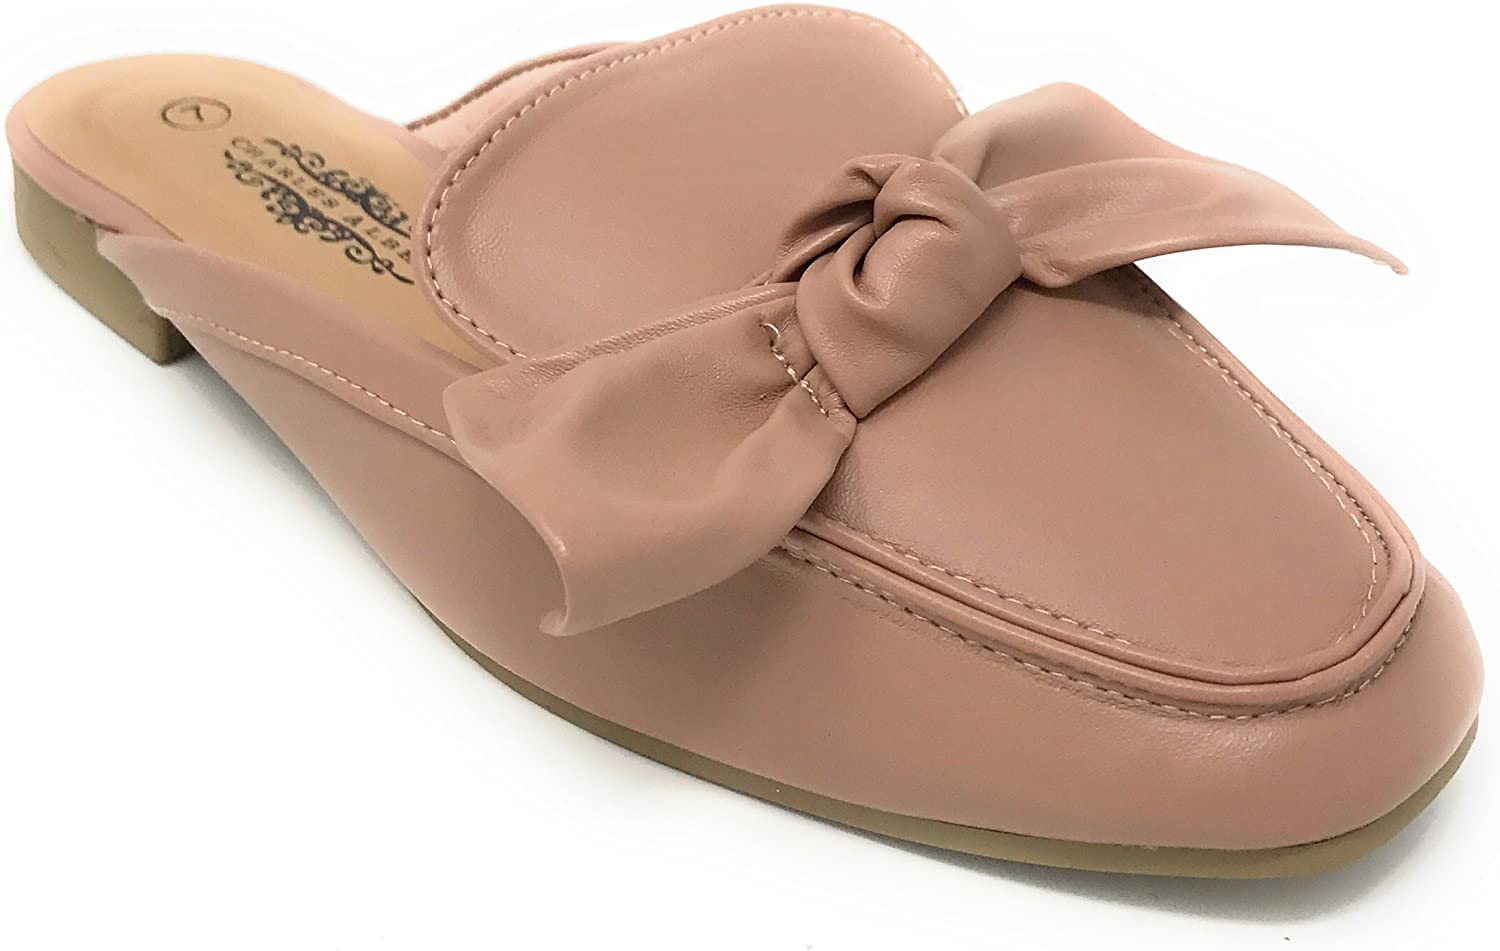 Charles Albert Women's Comfortable Slip-On Mule with Bow Design